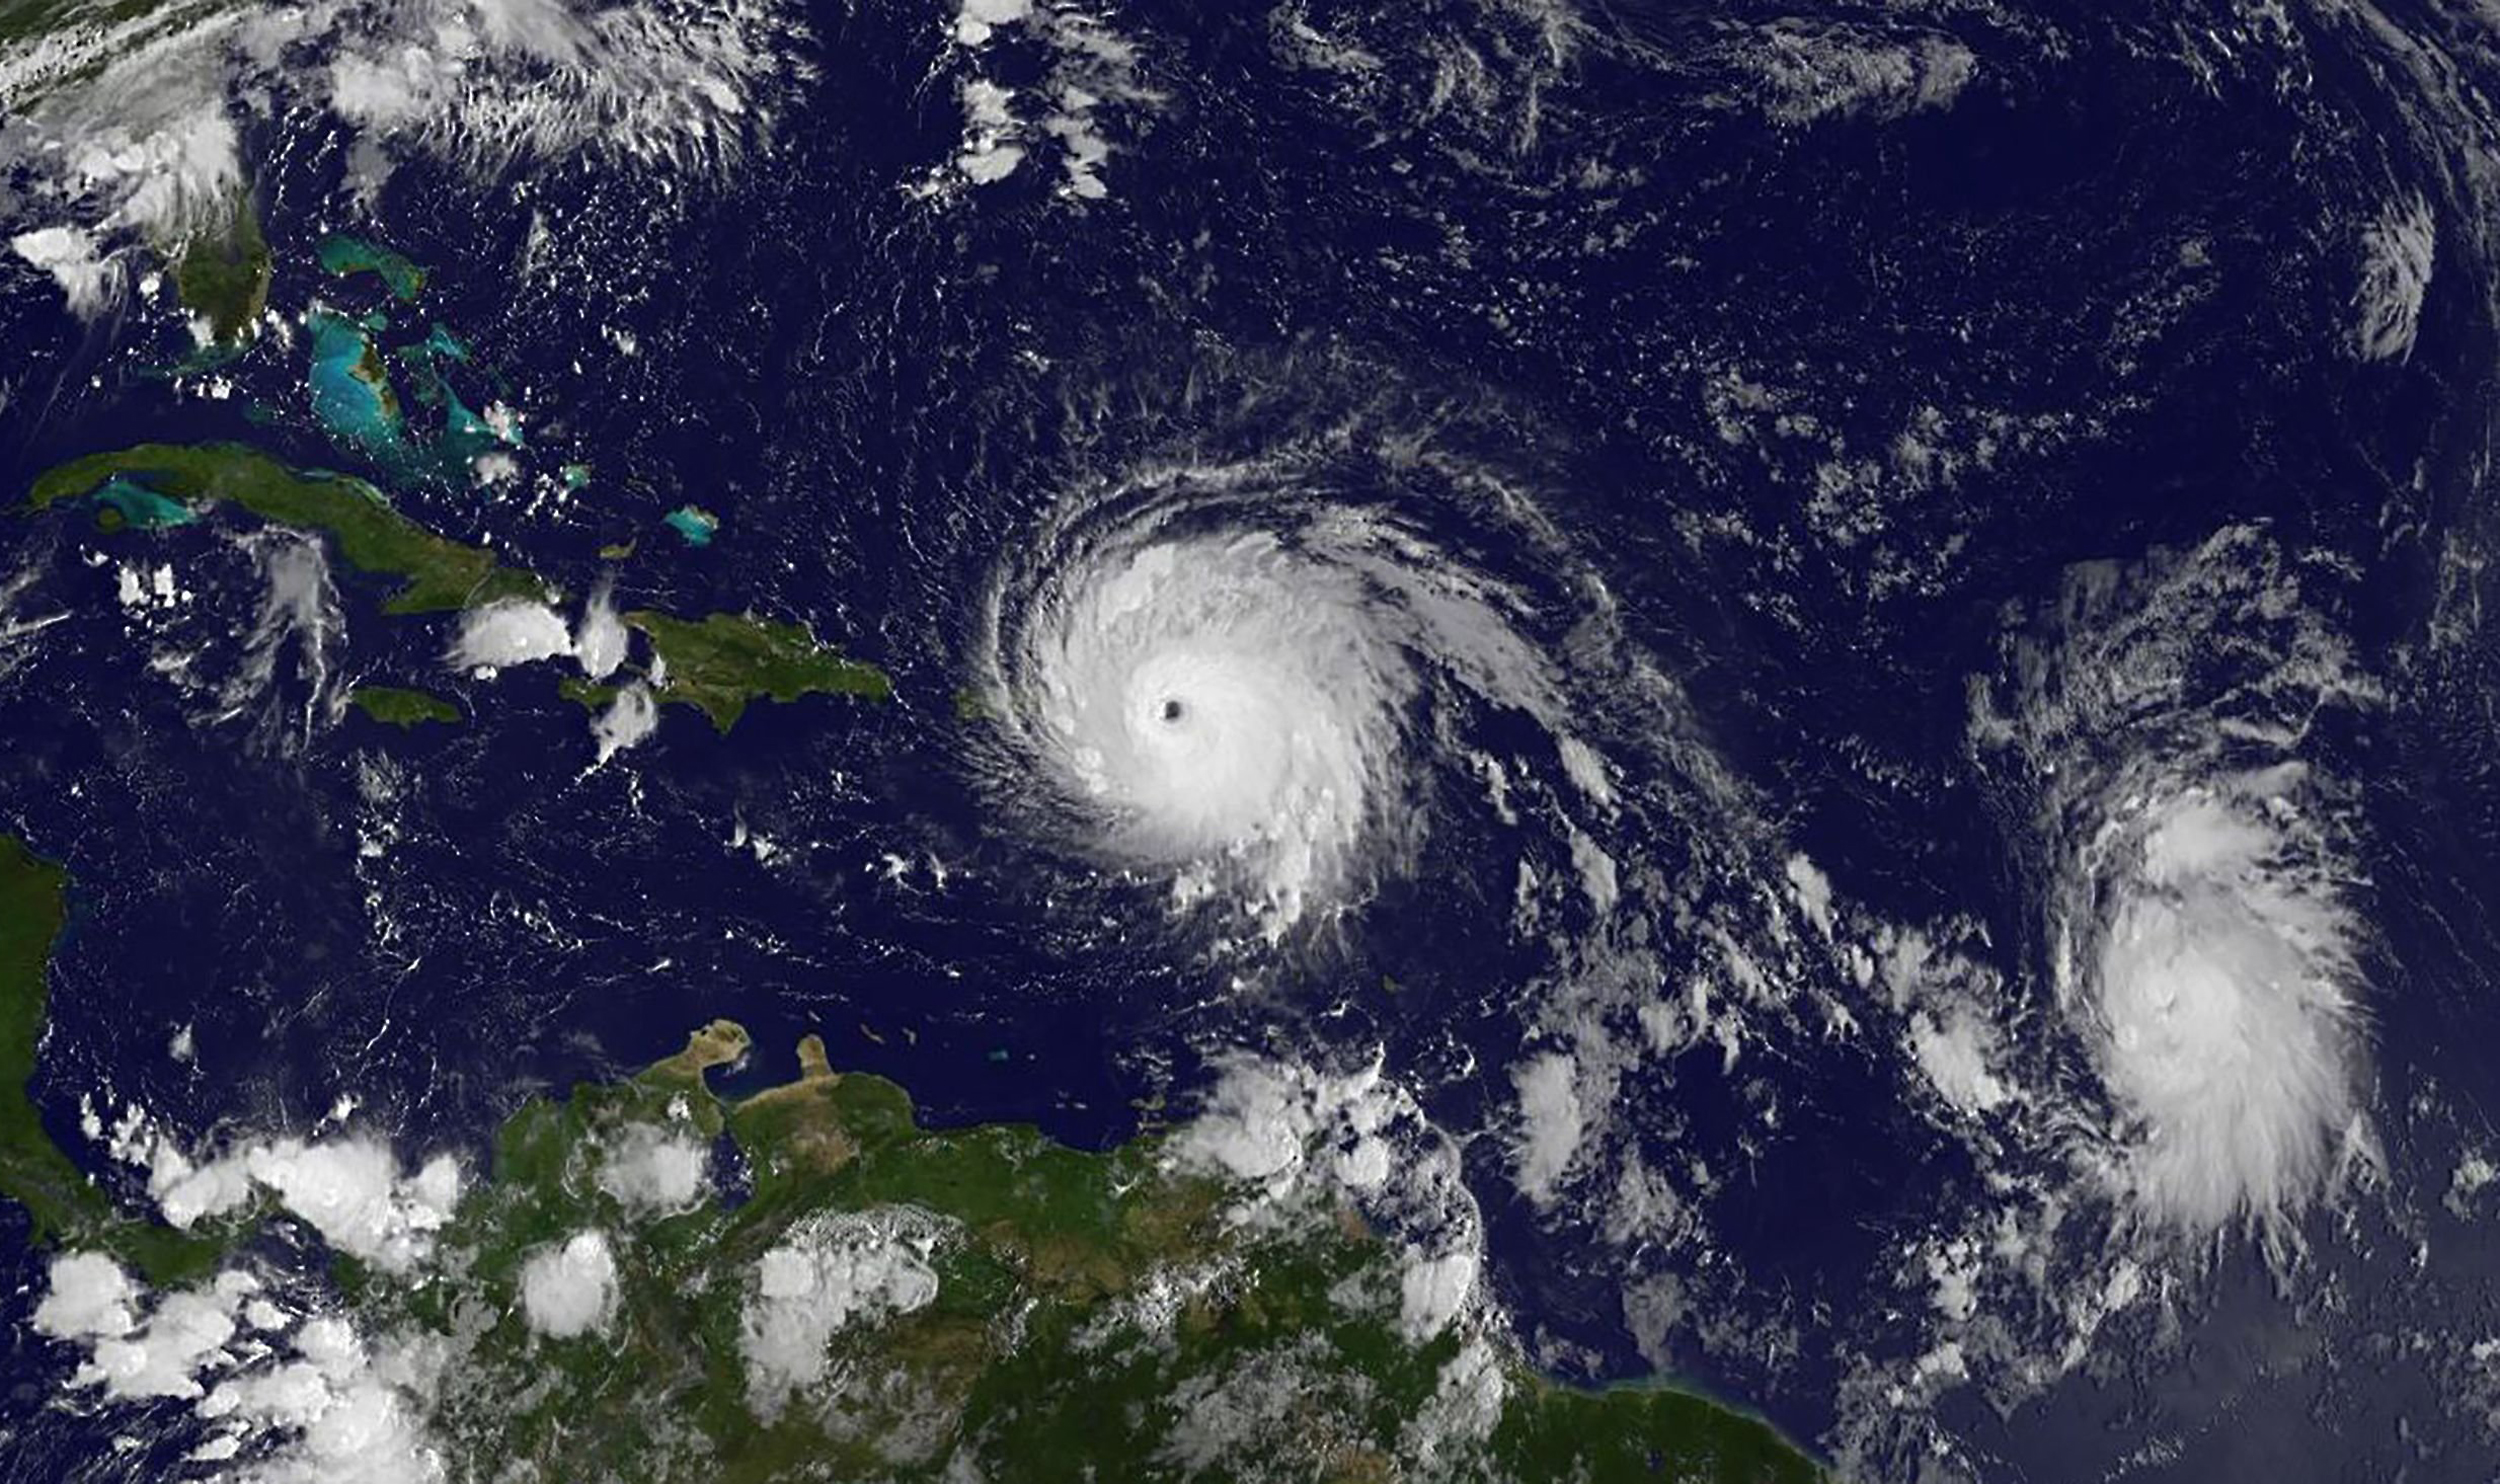 Image: US-WEATHER-HURRICANE-CARIBBEAN